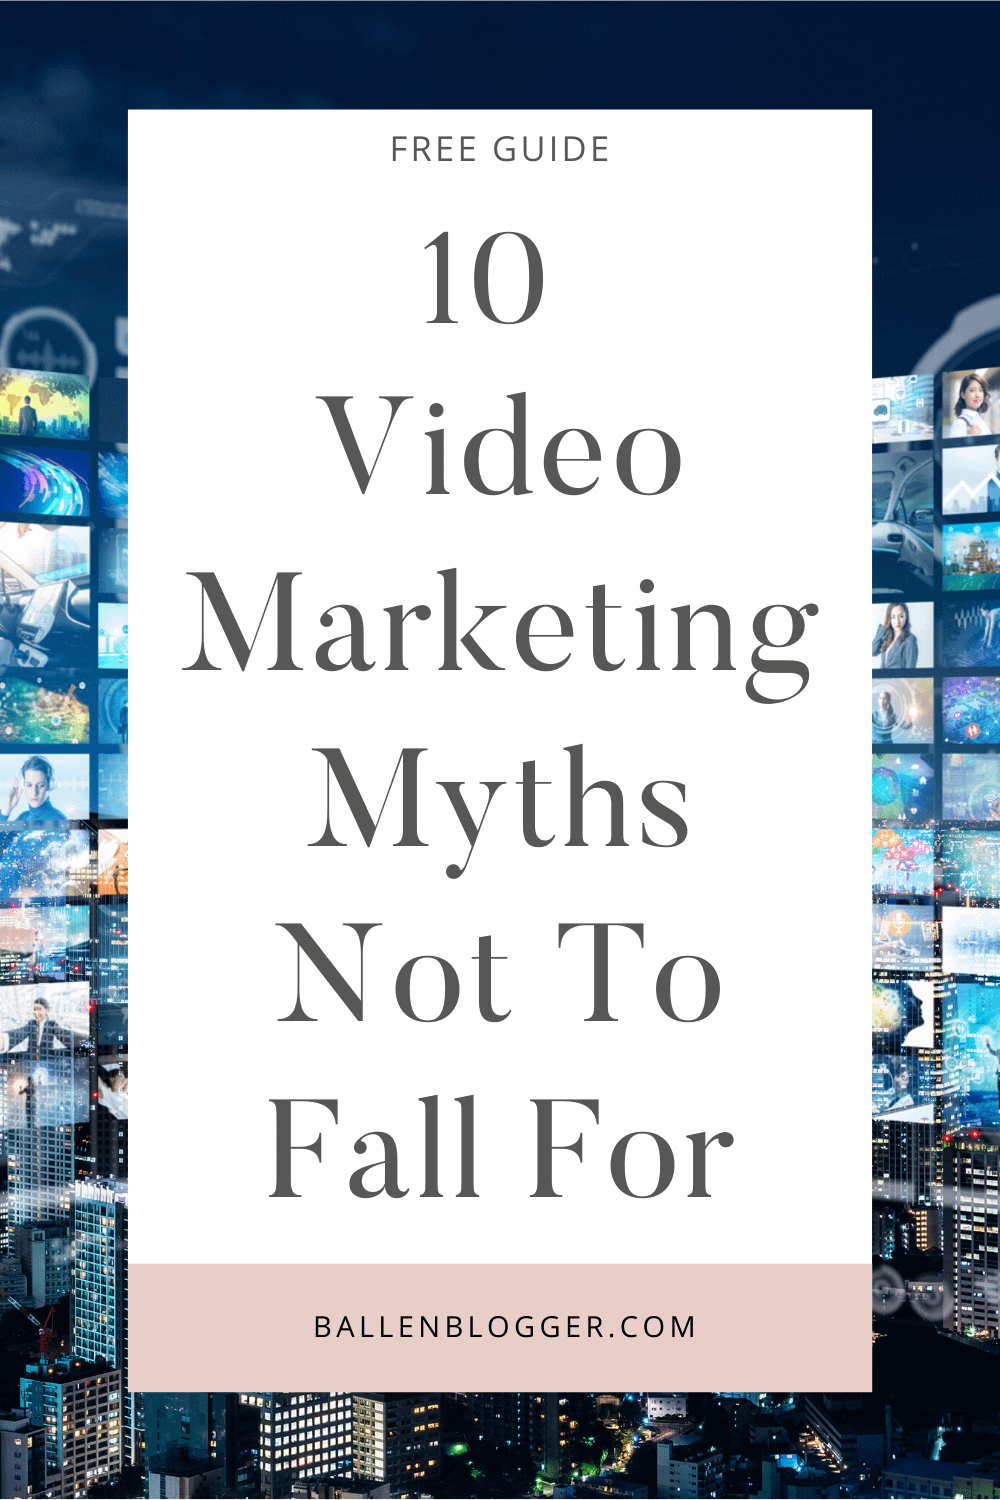 No matter what type of business you manage, you can promote it using high-quality videos. For an effective video marketing strategy, though, you shouldn't fall for the following ten common video marketing myths.